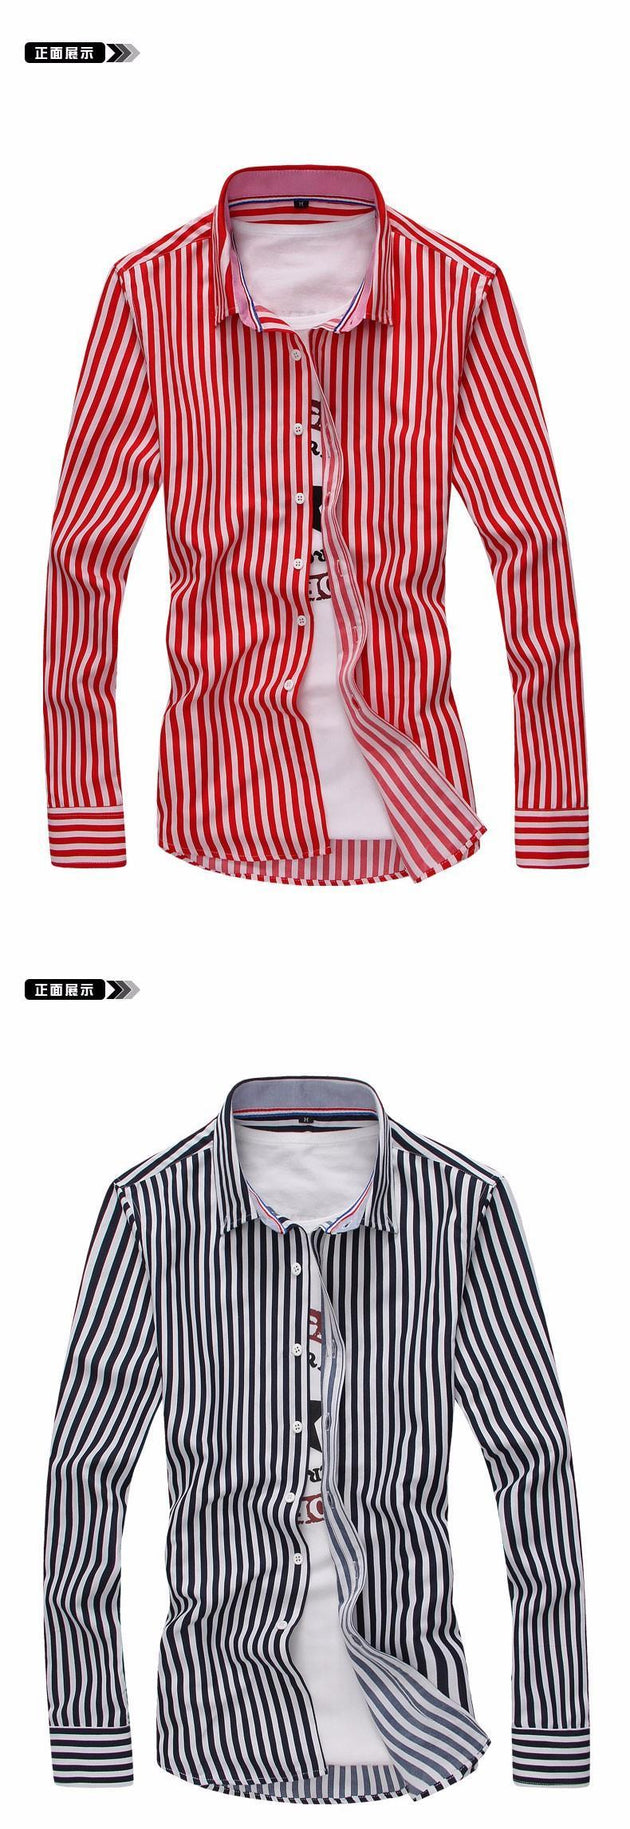 Men's Striped Dress Shirt - TrendSettingFashions